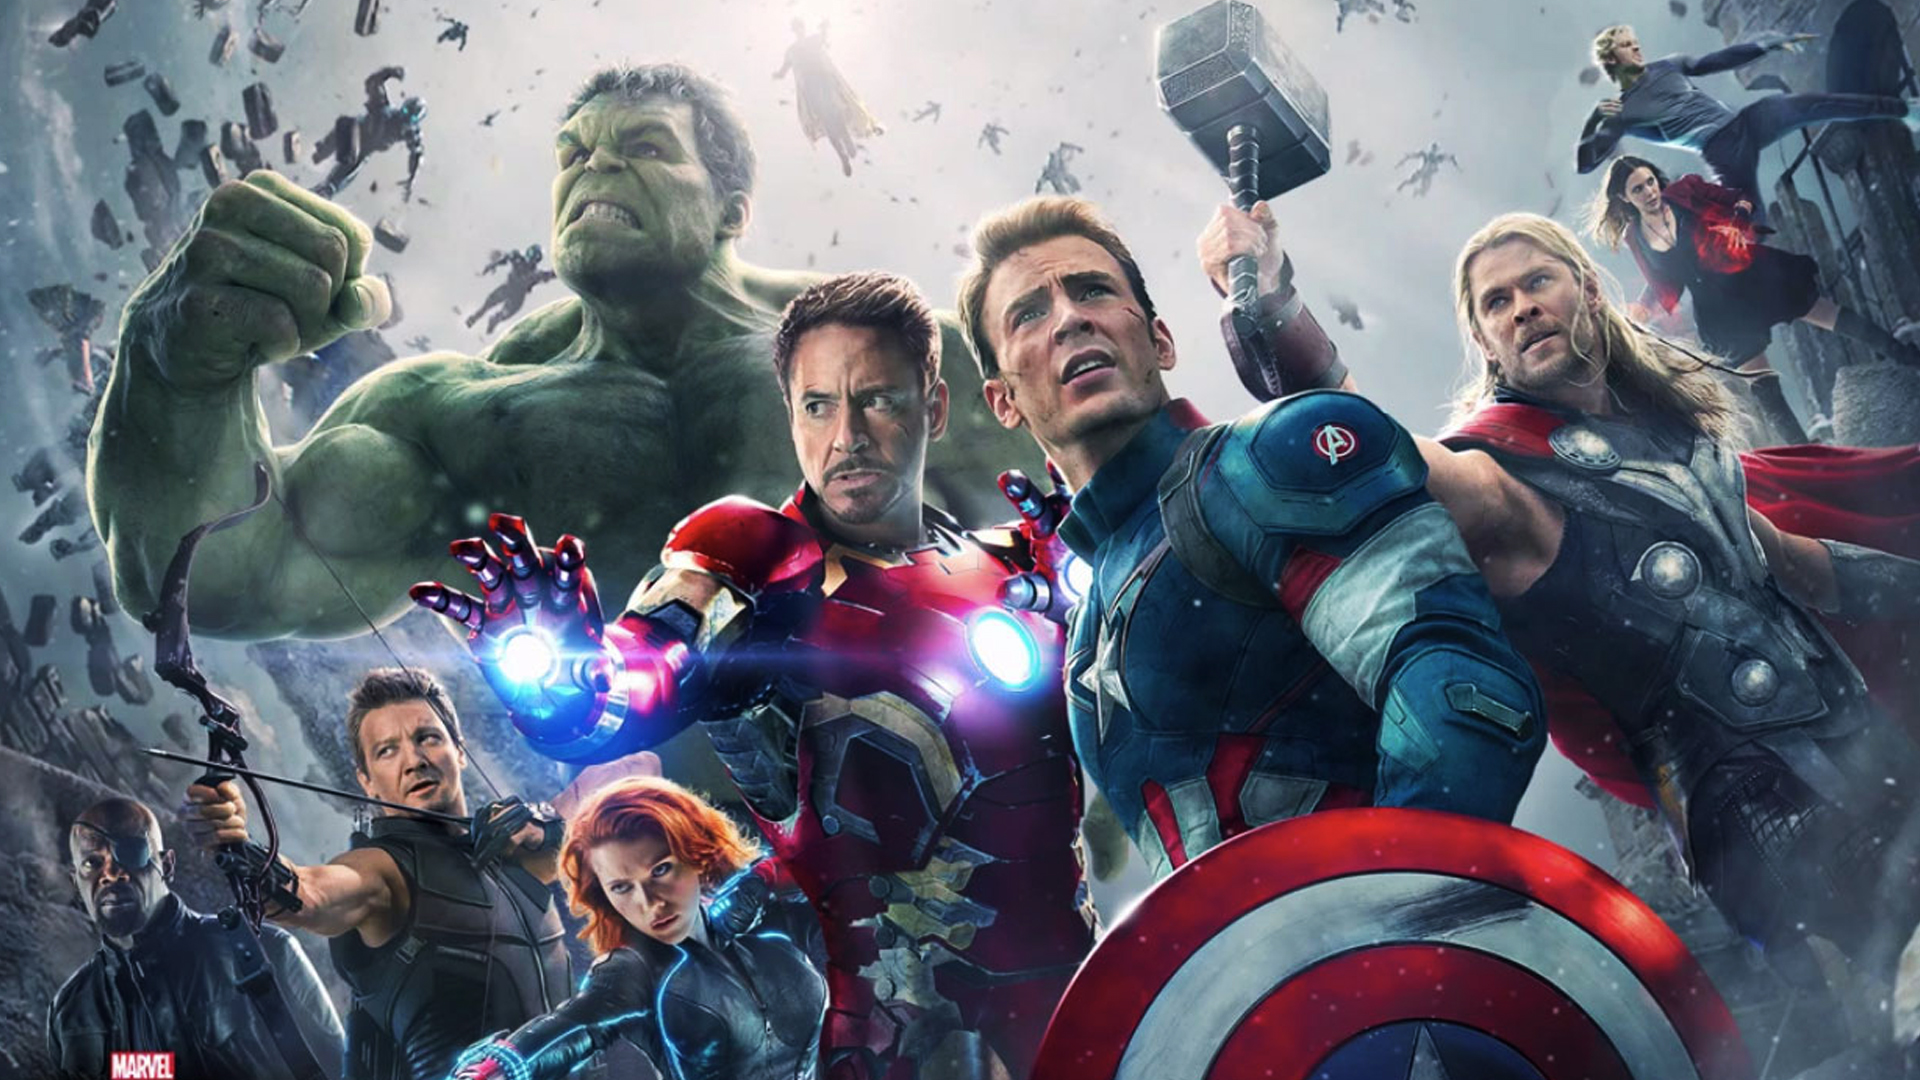 Marvel  have taken their colourful/bold characters and successfully placed them into a 'real word' setting, making them more relatable to a 21st century audience  . From the down to earth origins of  Iron man , to the intergalactic  Guardians of the Galaxy ;each film builds on larger world/story, while still telling much more personal stories to keeping the audience invested. They even made us care about a walking/talking tree and a gun toting racoon, which is by no means an easy feat. Kudos!